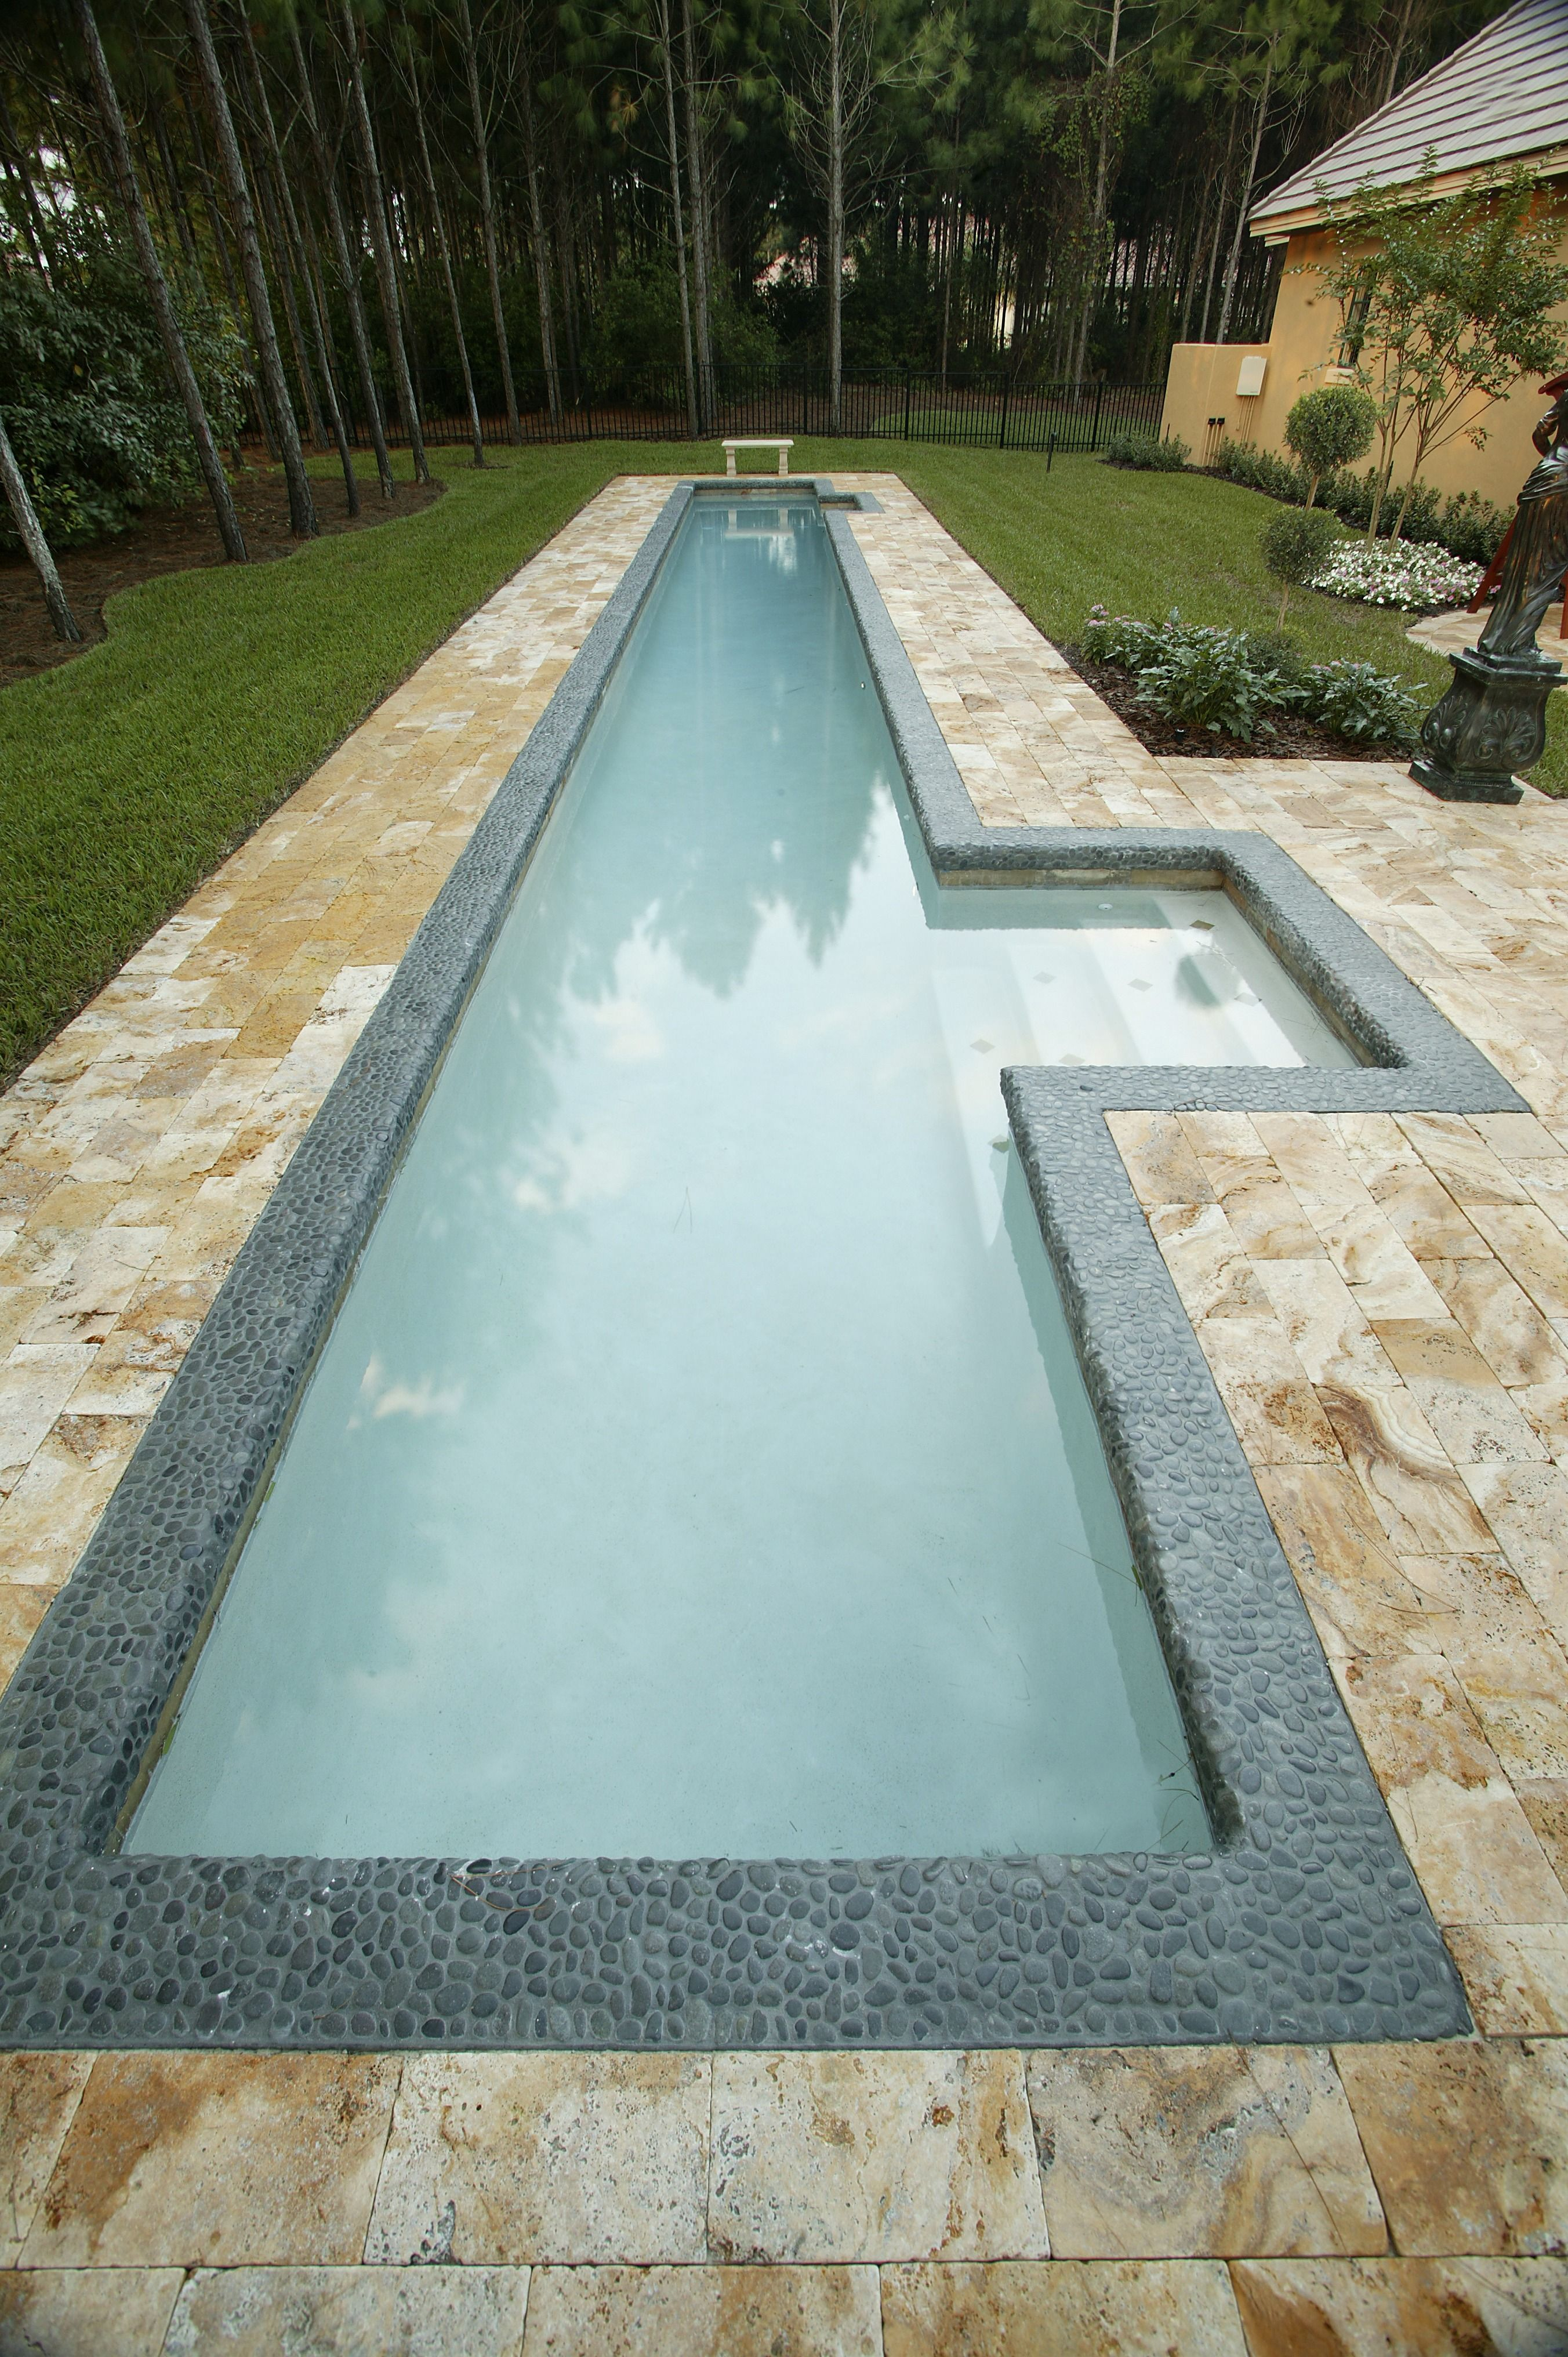 Benefits Of A Swimming Pool Lap Pools Backyard Lap Pool Designs